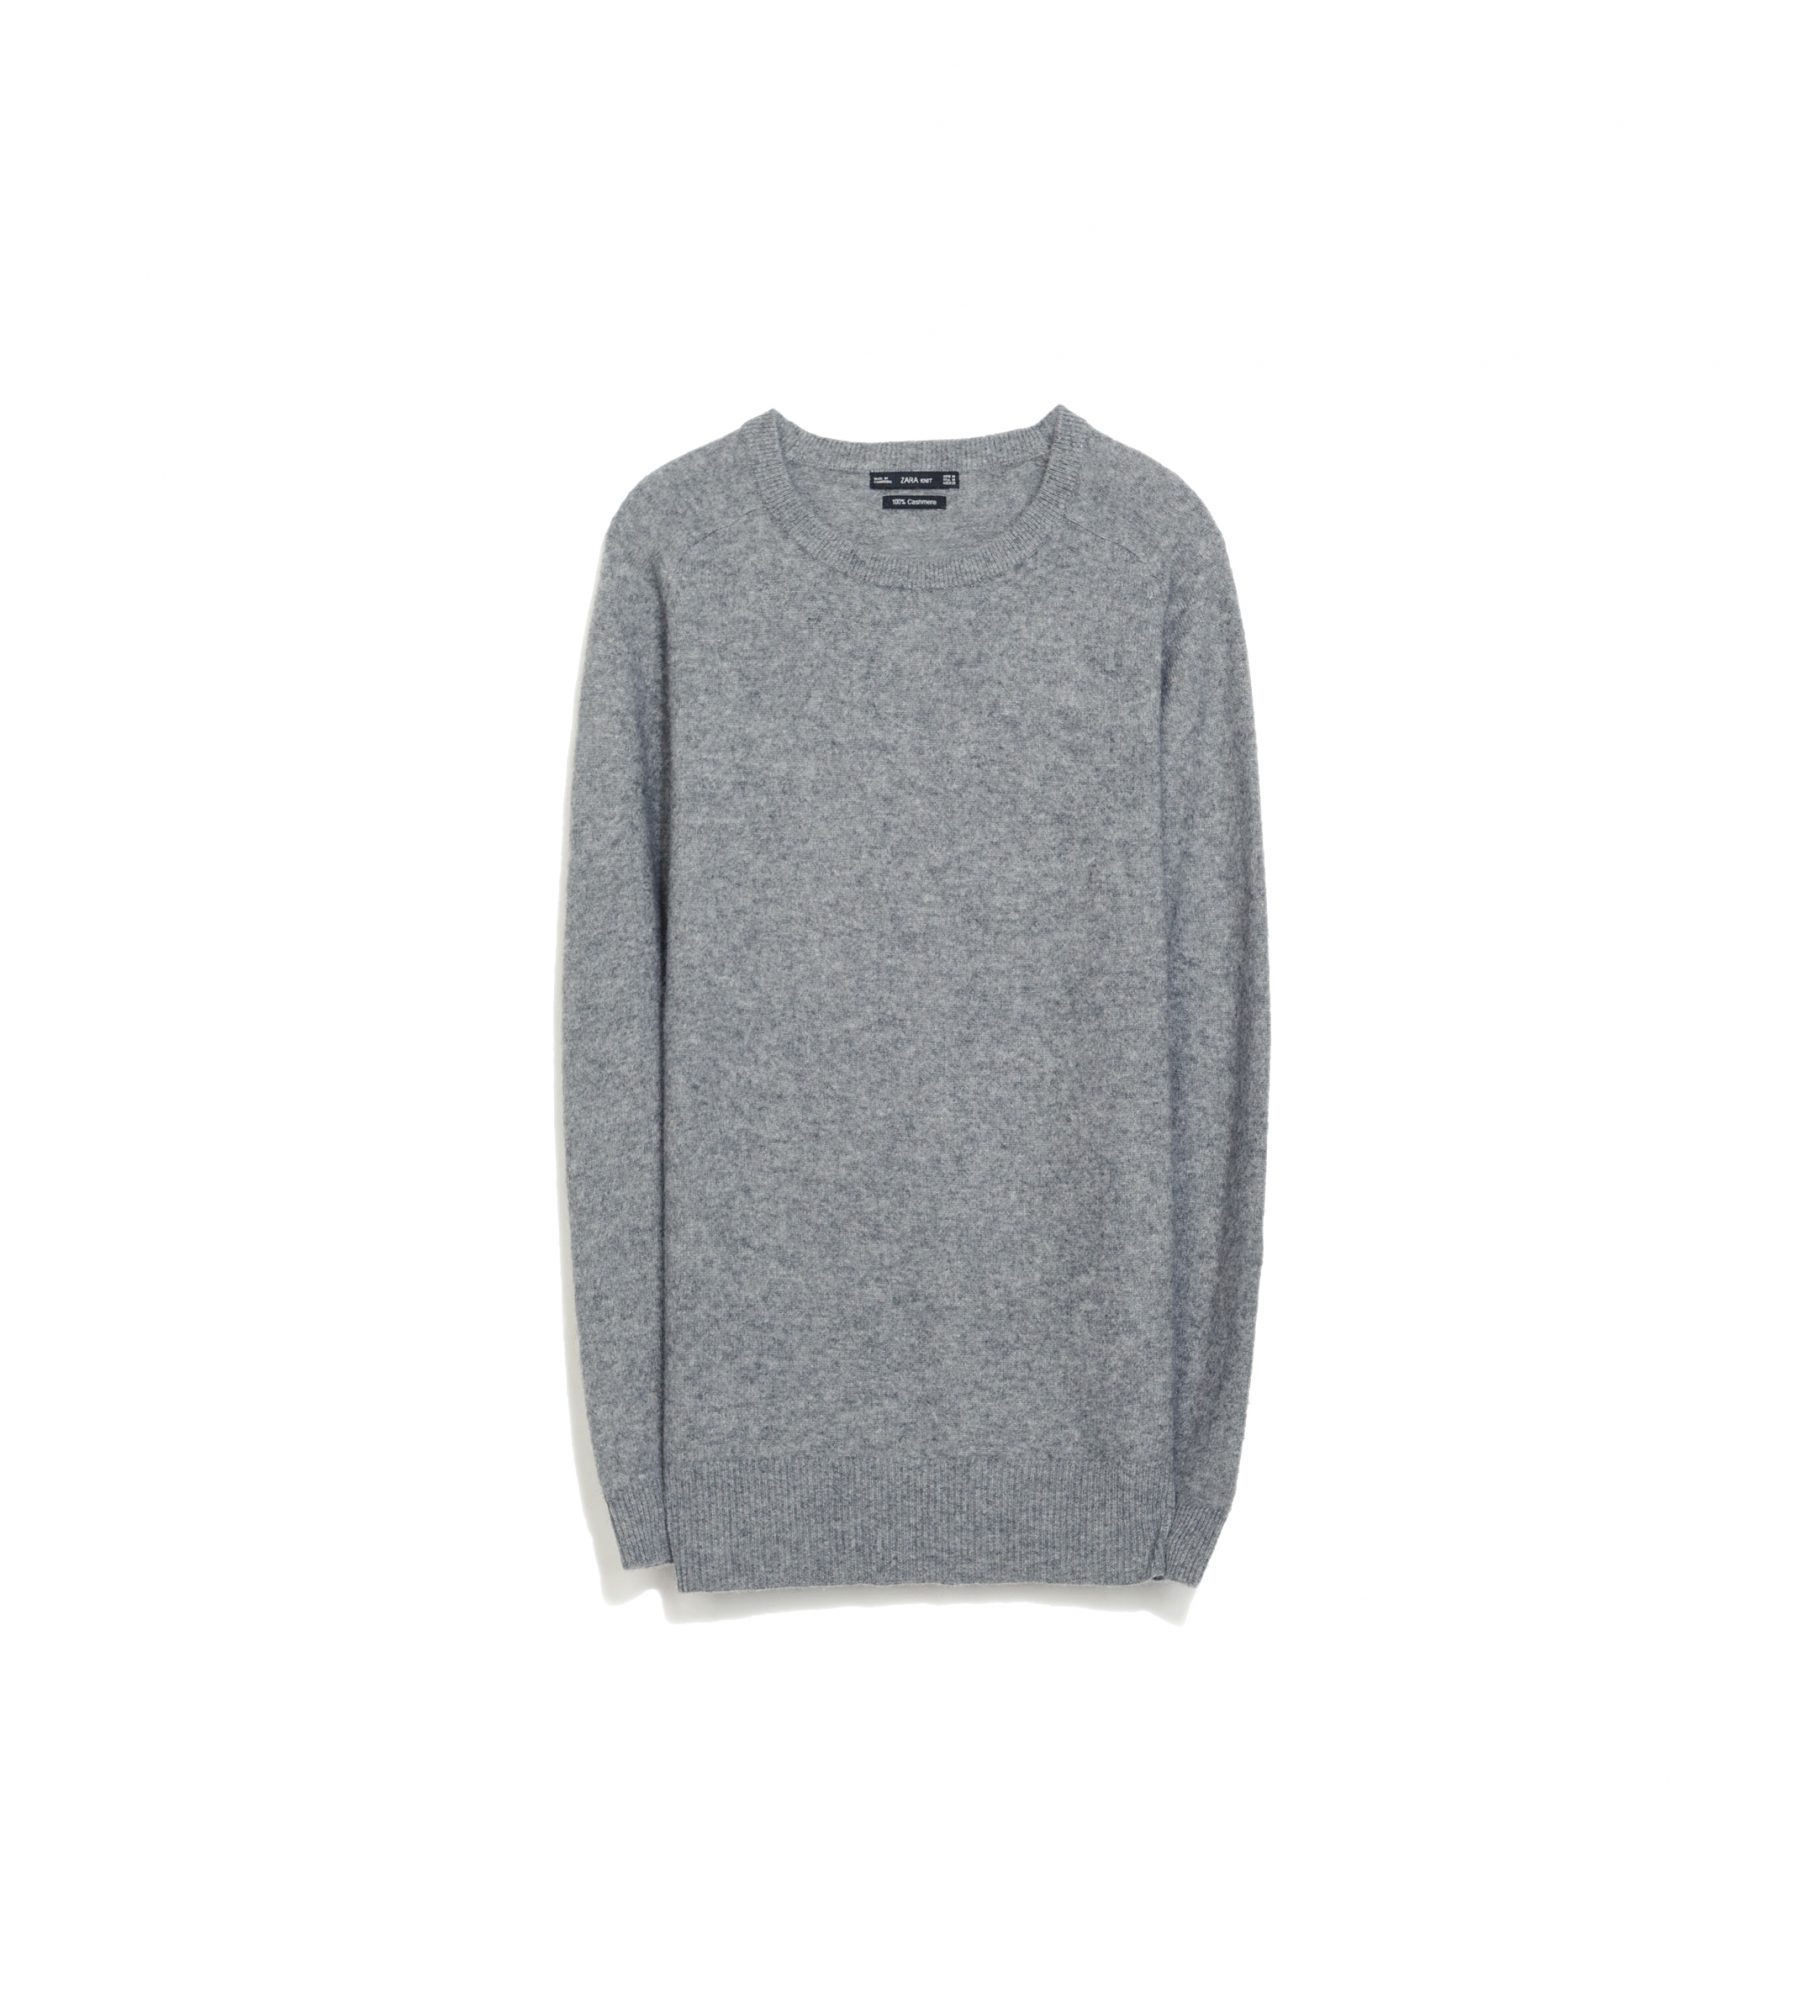 Zara Crew Neck Cashmere Sweater